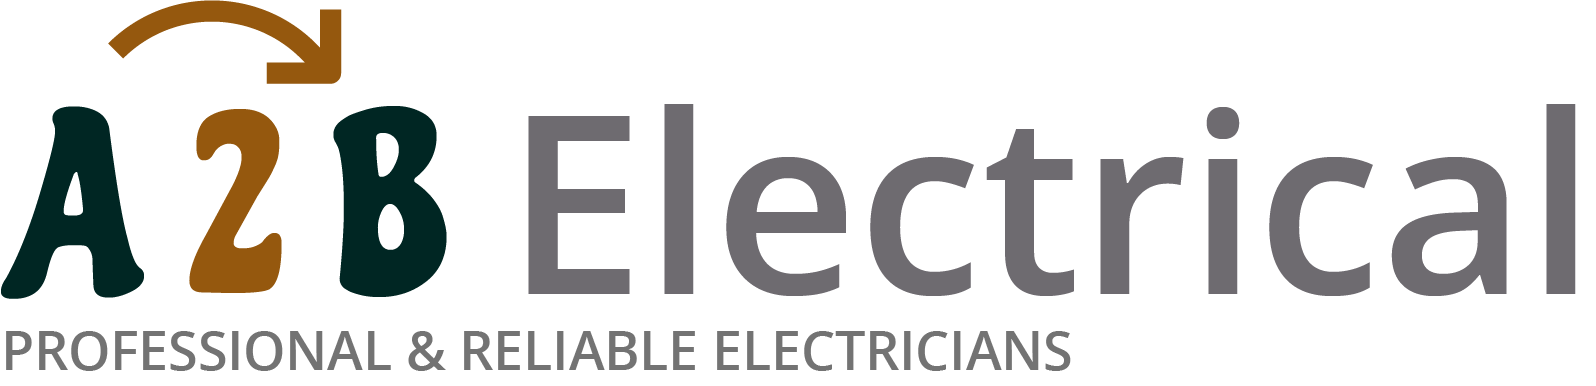 If you have electrical wiring problems in Wood Green, we can provide an electrician to have a look for you.